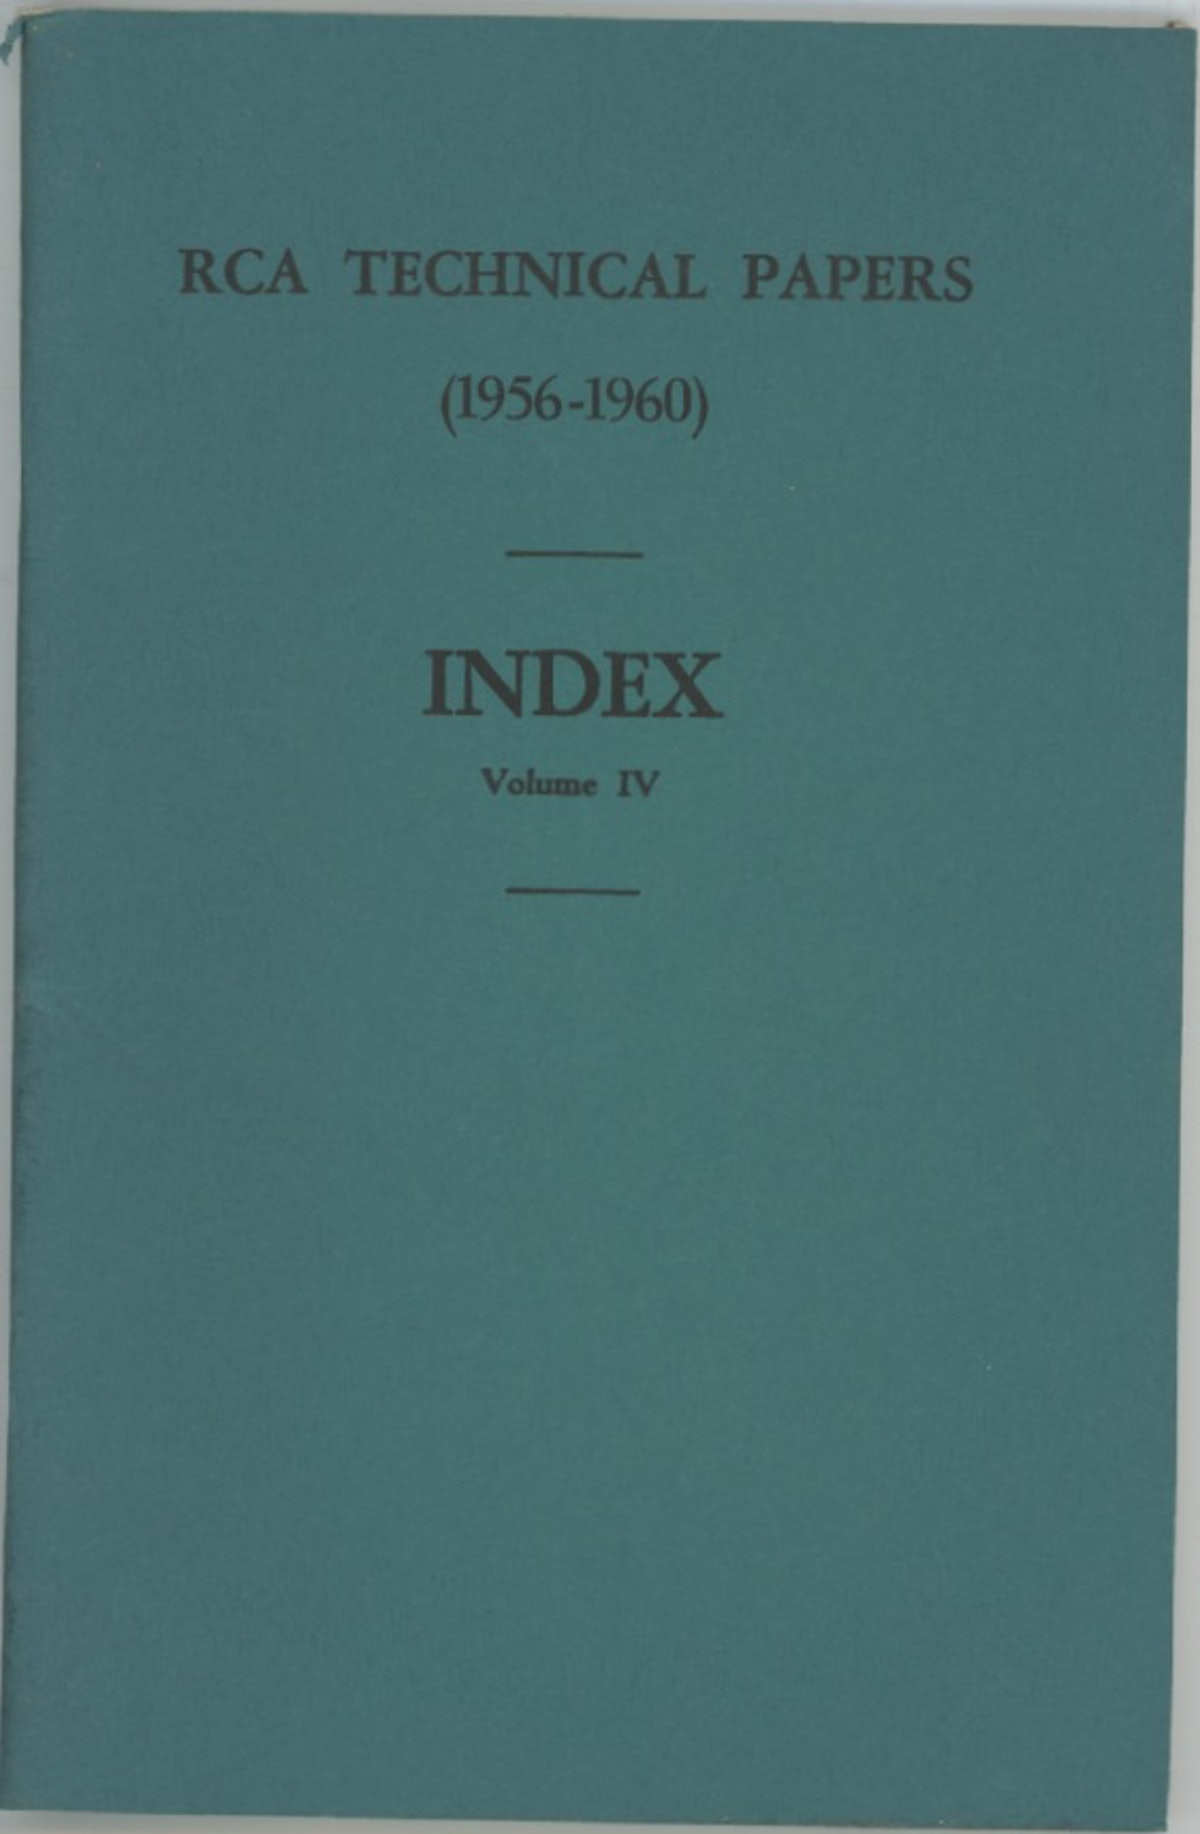 RCA Technical Papers Index Volume IV